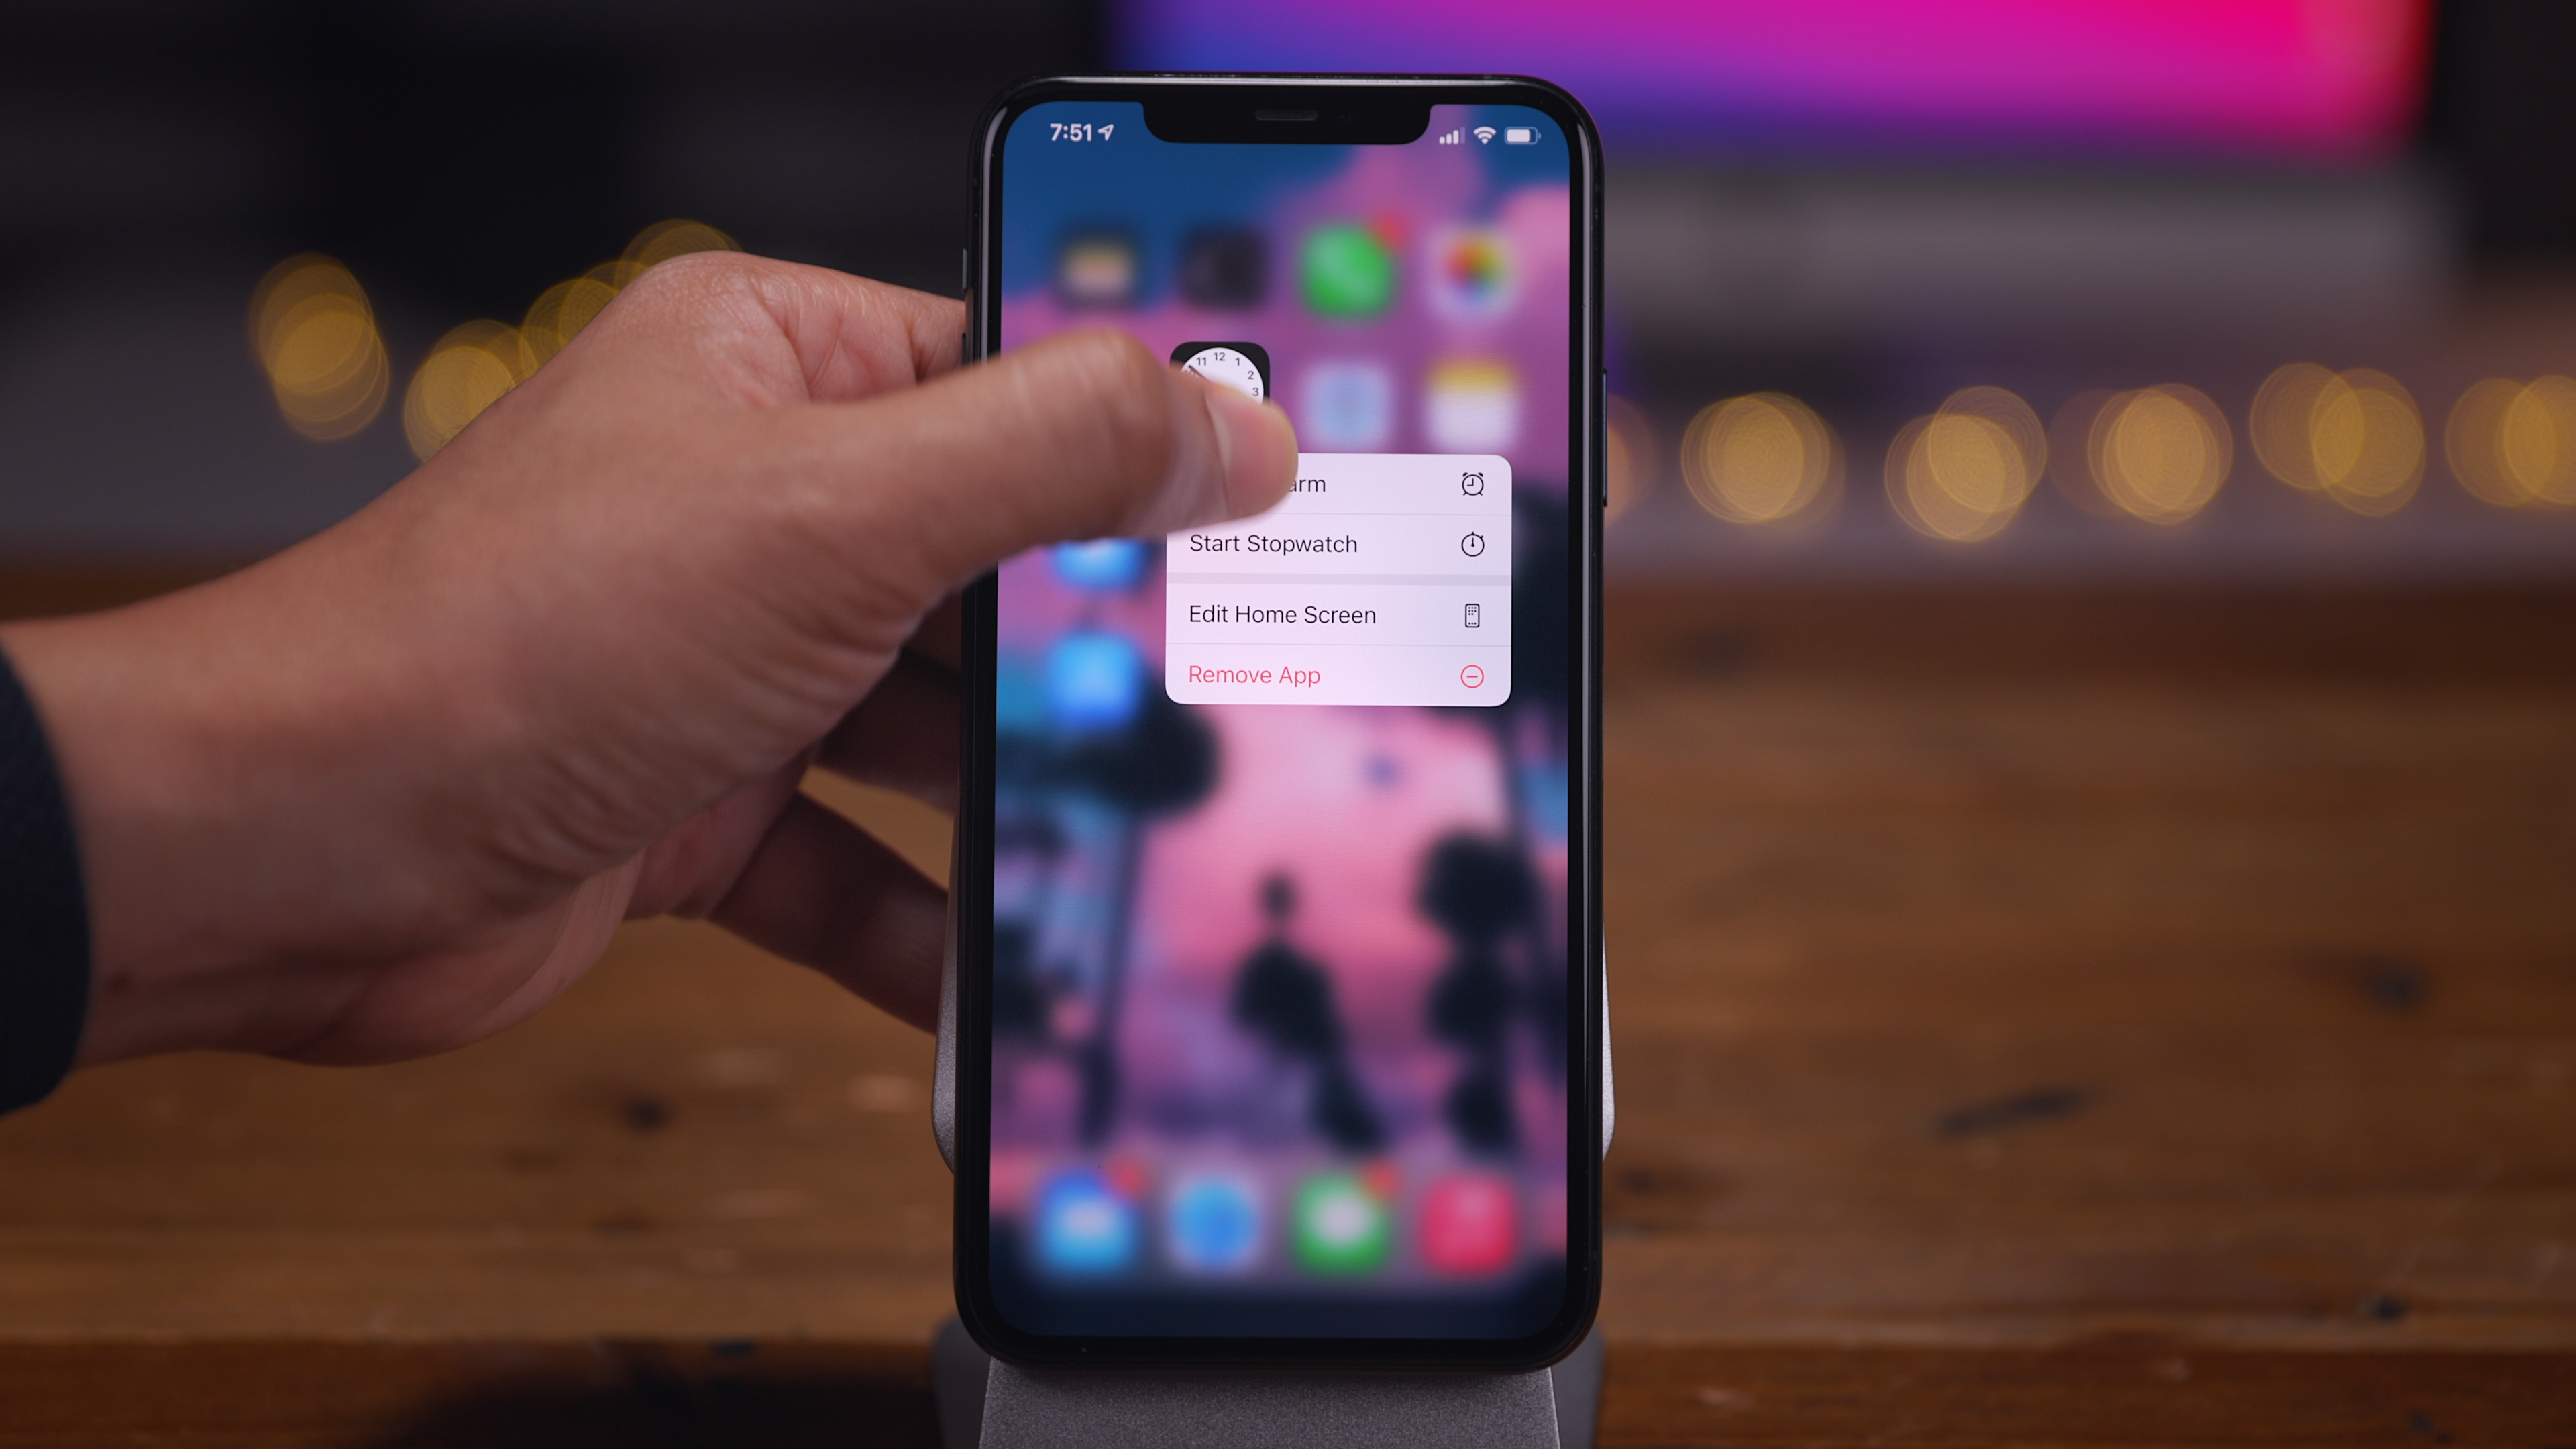 Master Ios 14 Home Screen App Management On Iphone 9to5mac